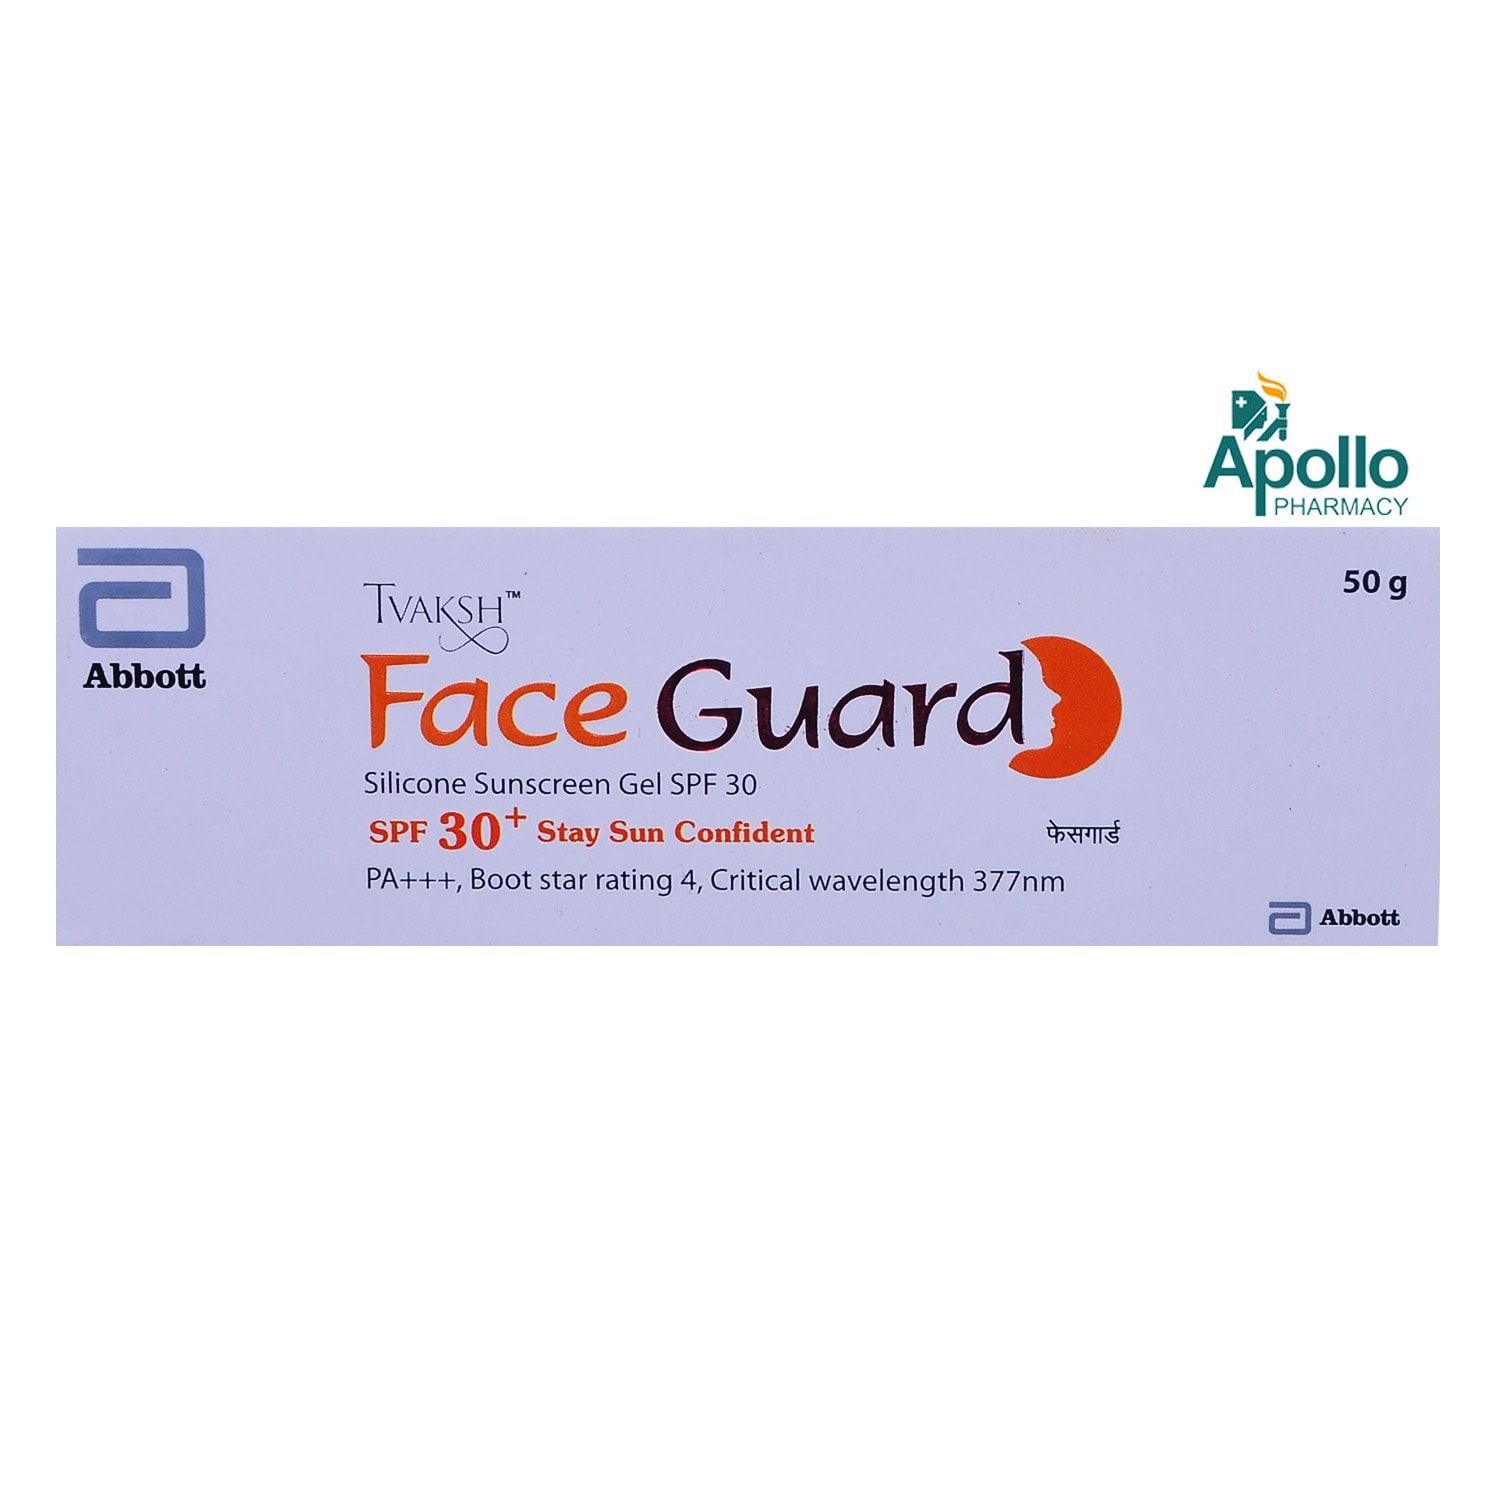 Tvaksh Face Guard Silicone Sunscreen Gel SPF 30+ PA+++, 50 gm, Pack of 1